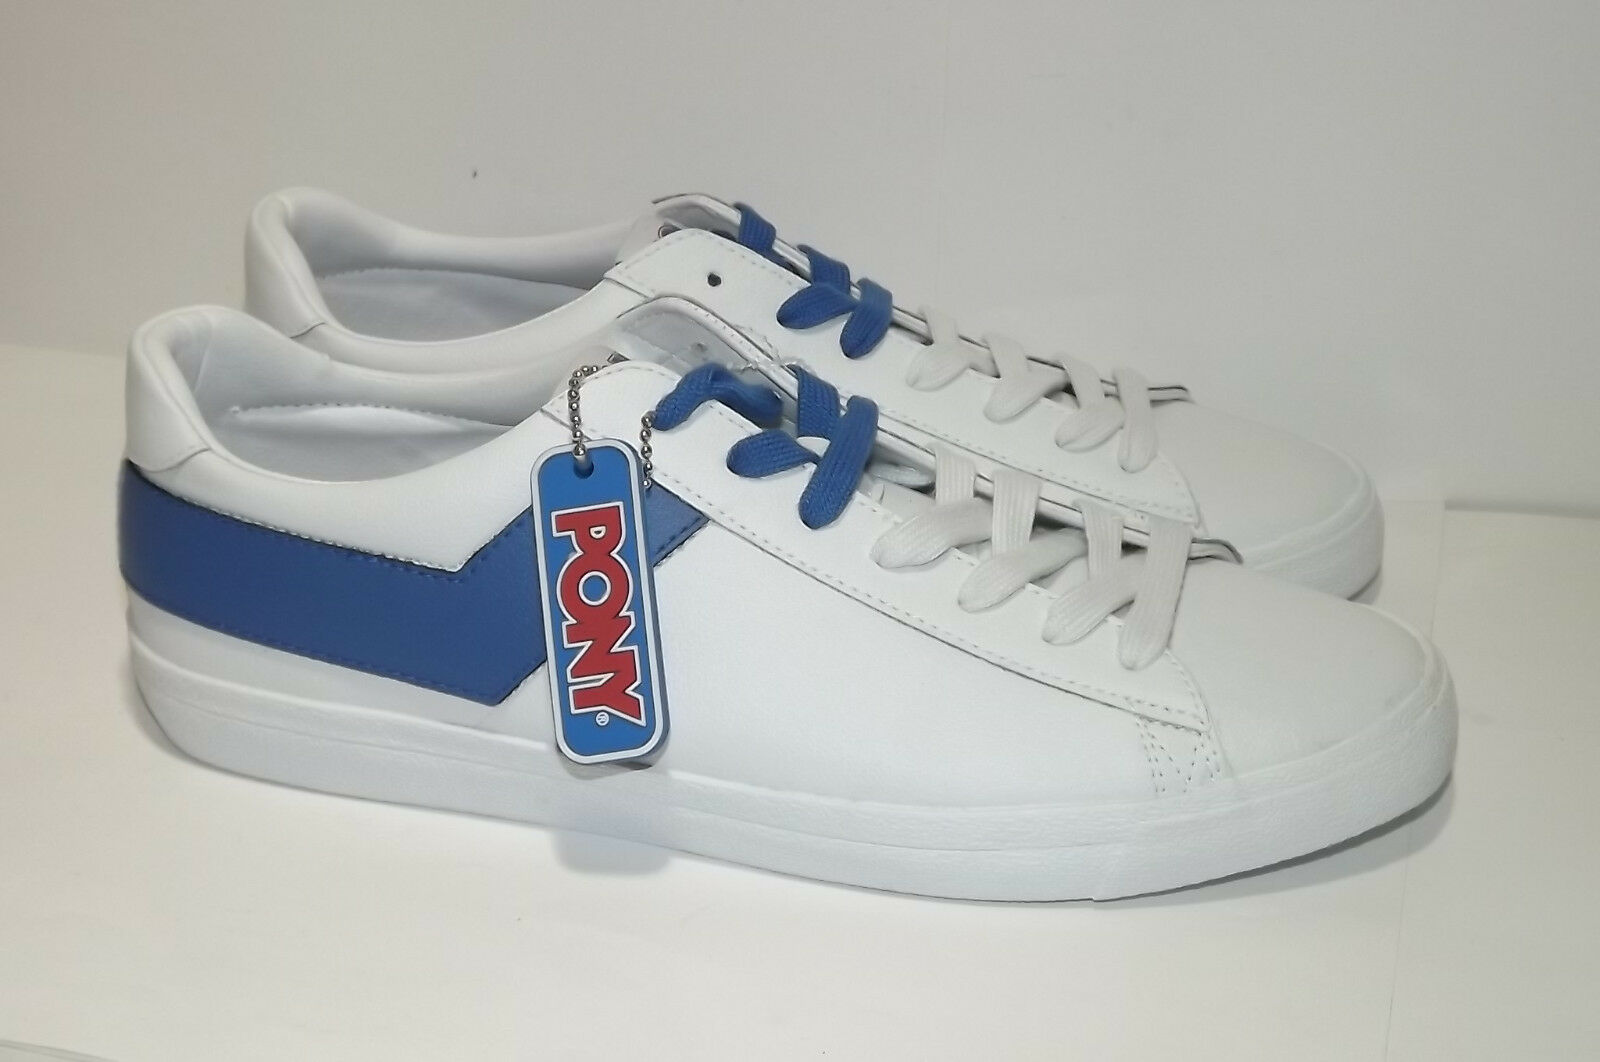 MEN'S PONY TOP STAR WHITE BLUE LEATHER CASUAL SHOES SIZE 10.5 NEW